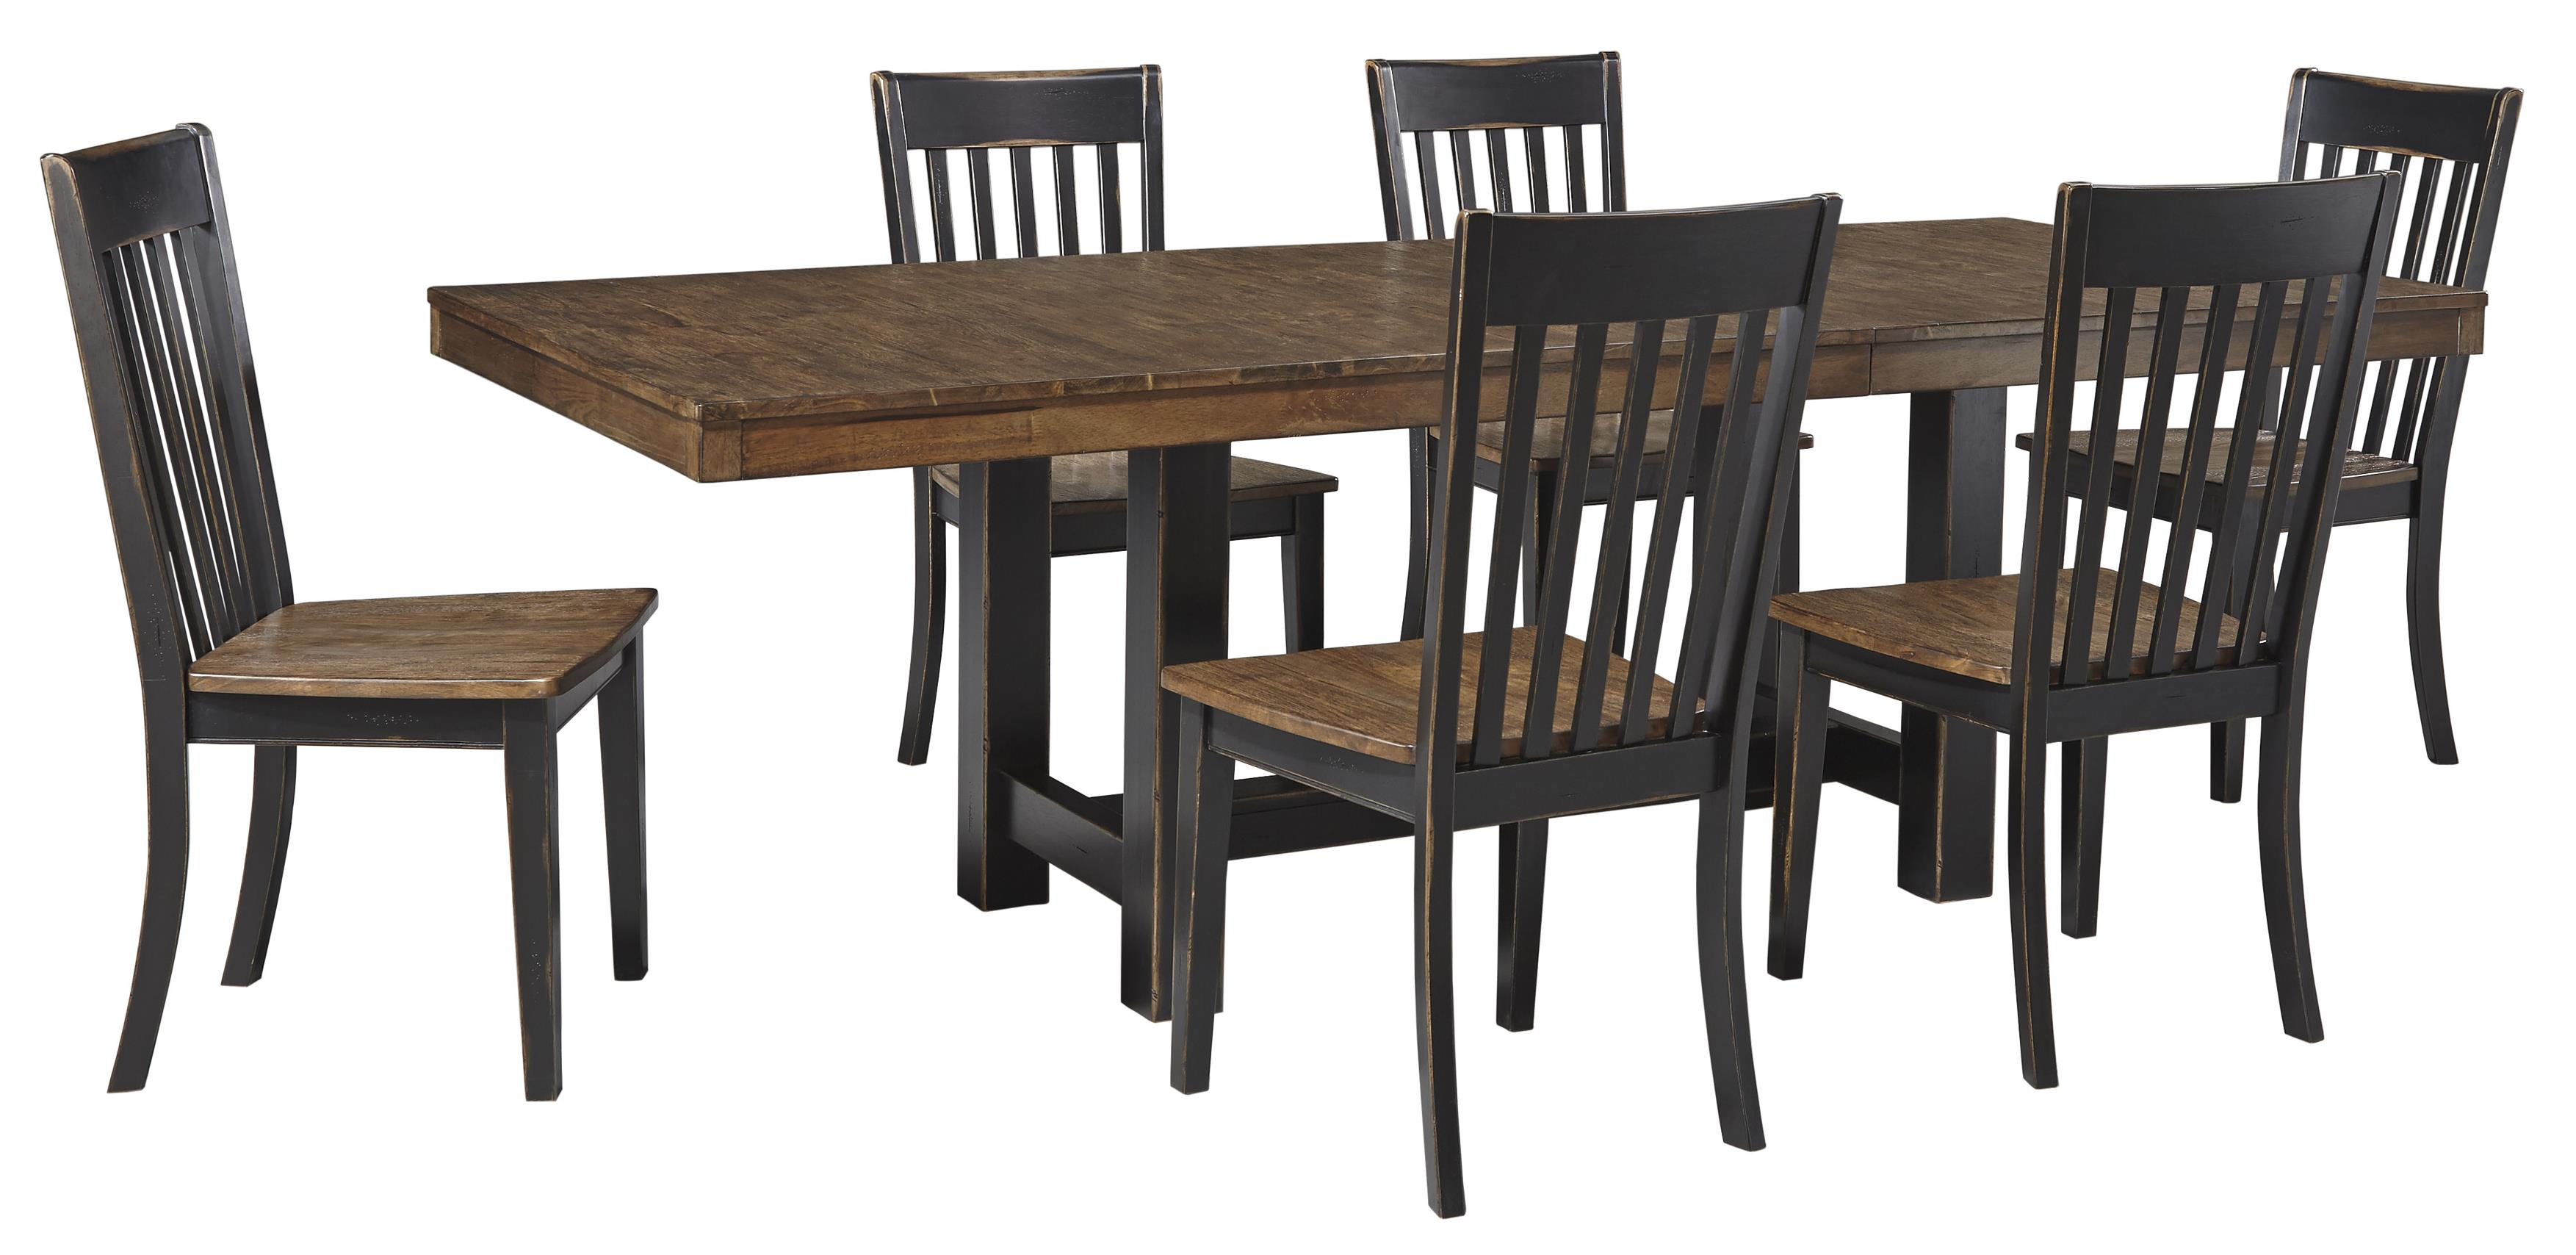 Signature Design by Ashley Emerfield 7 Piece Two-Tone Dining Table Set - Item Number: D563-35+6x-01